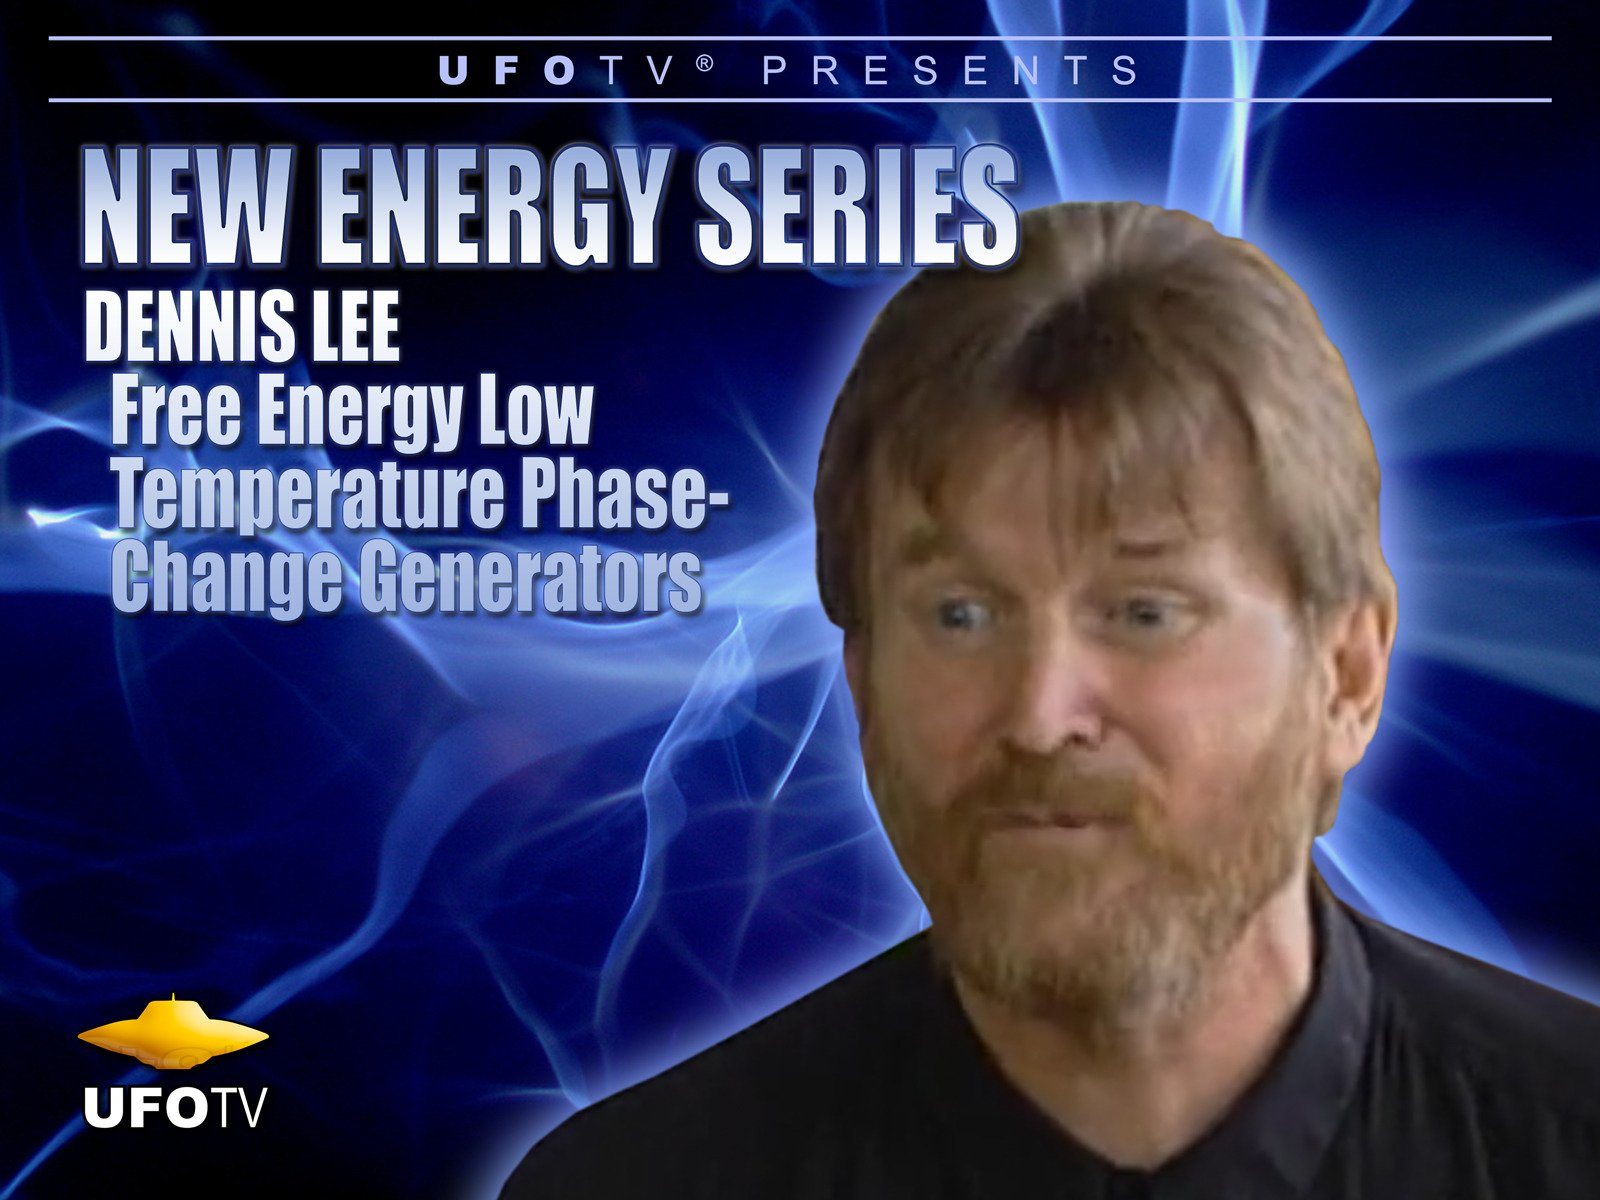 Dennis Lee - Free Energy Low Temperature Phase-Change Generators by